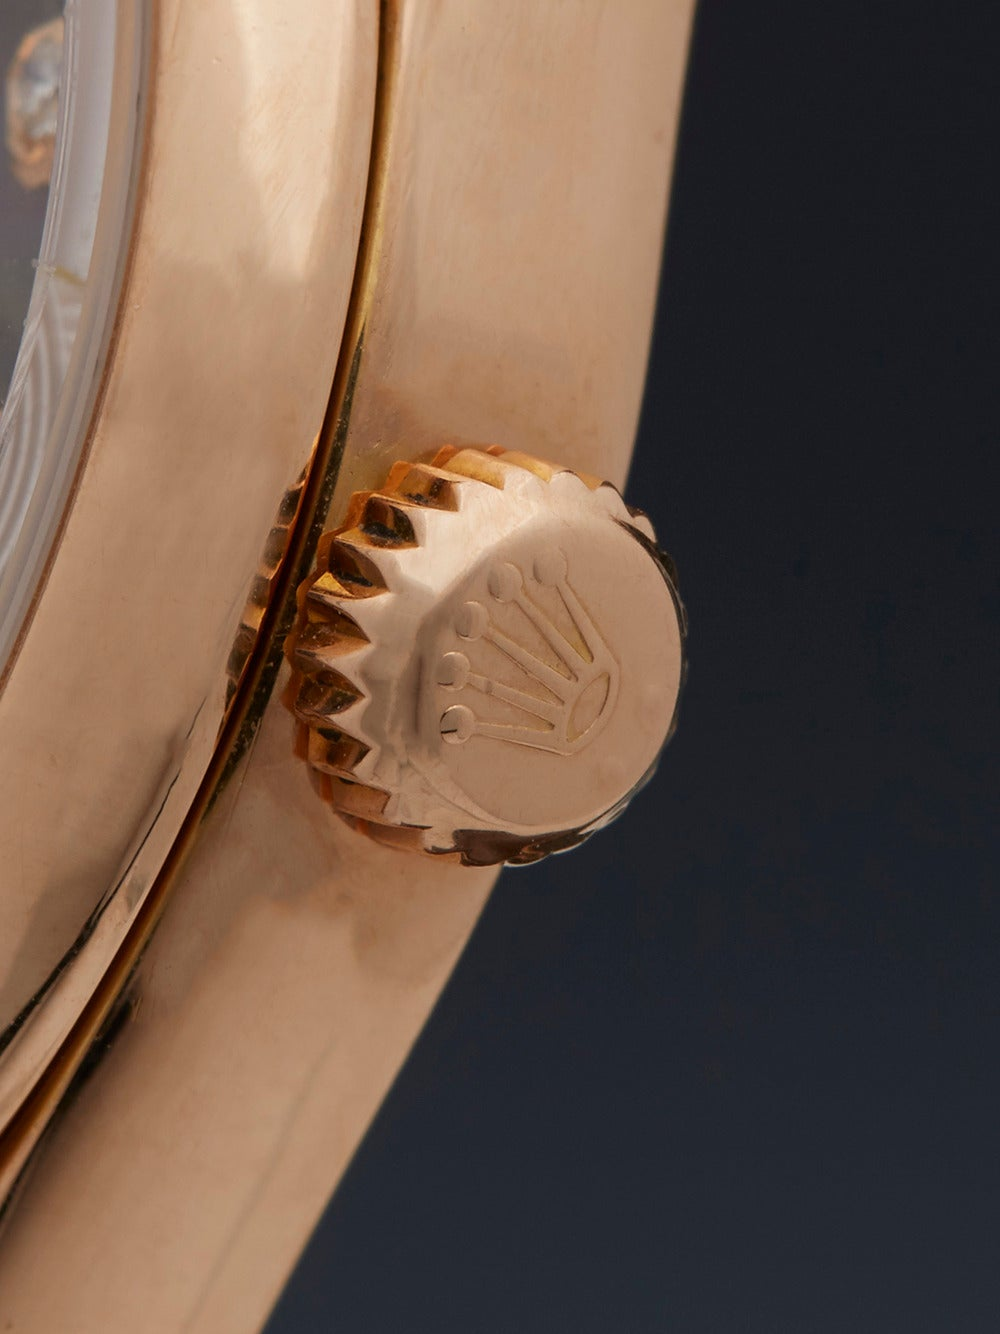 Rolex Lady's Rose Gold Mother-of-Pearl Dial Automatic Wristwatch Ref 118205 4